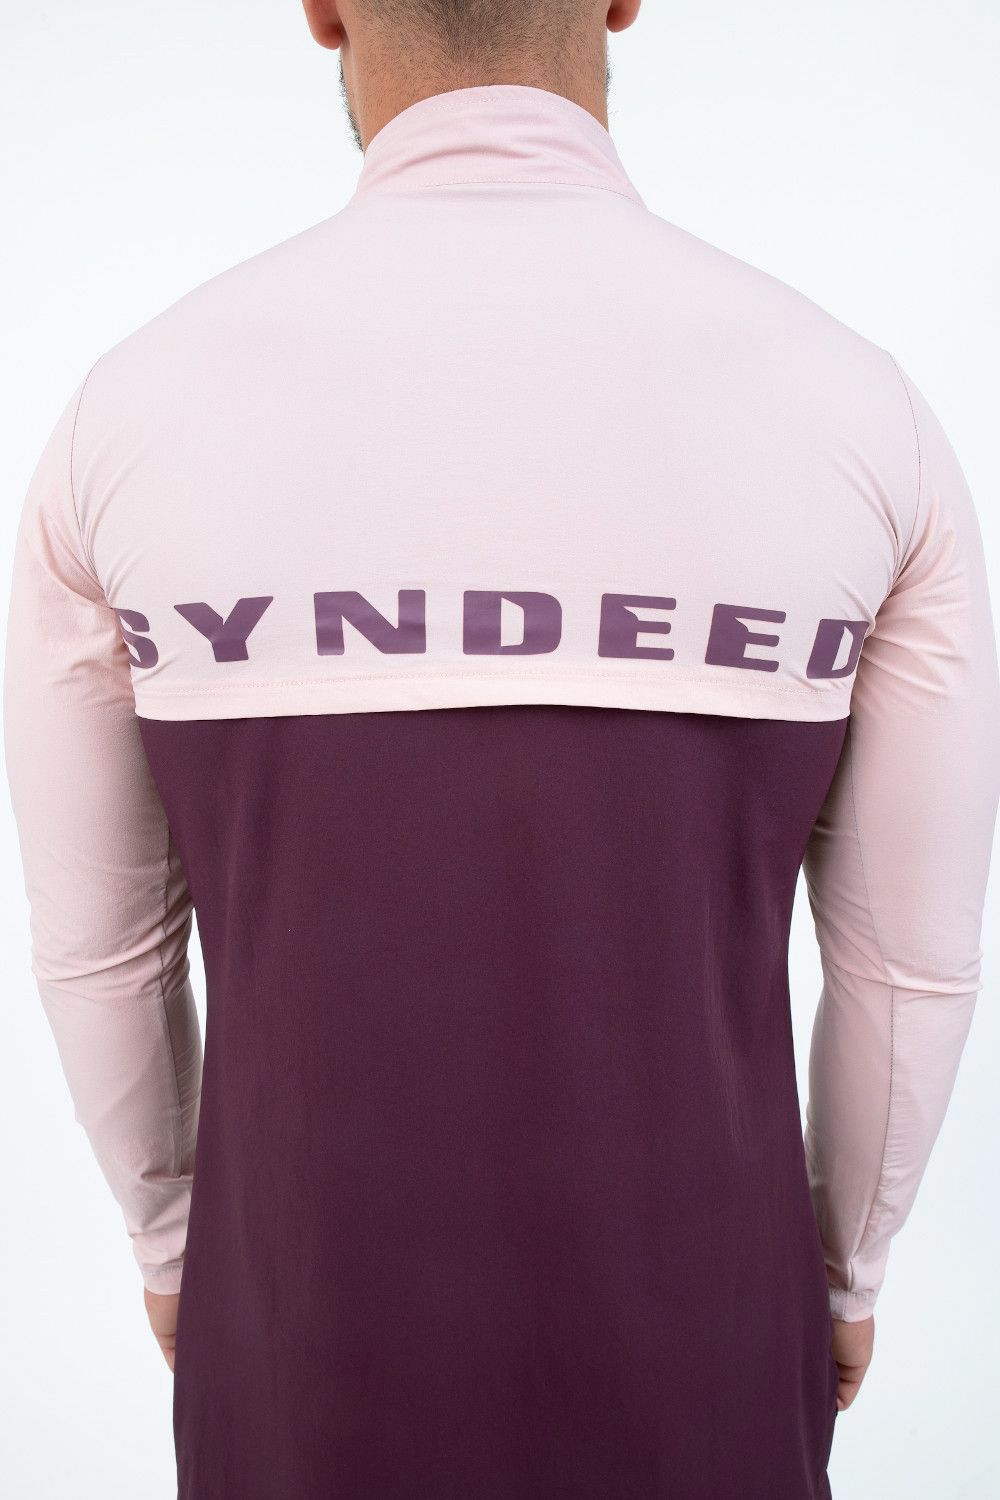 Syndeed_Vision_V3